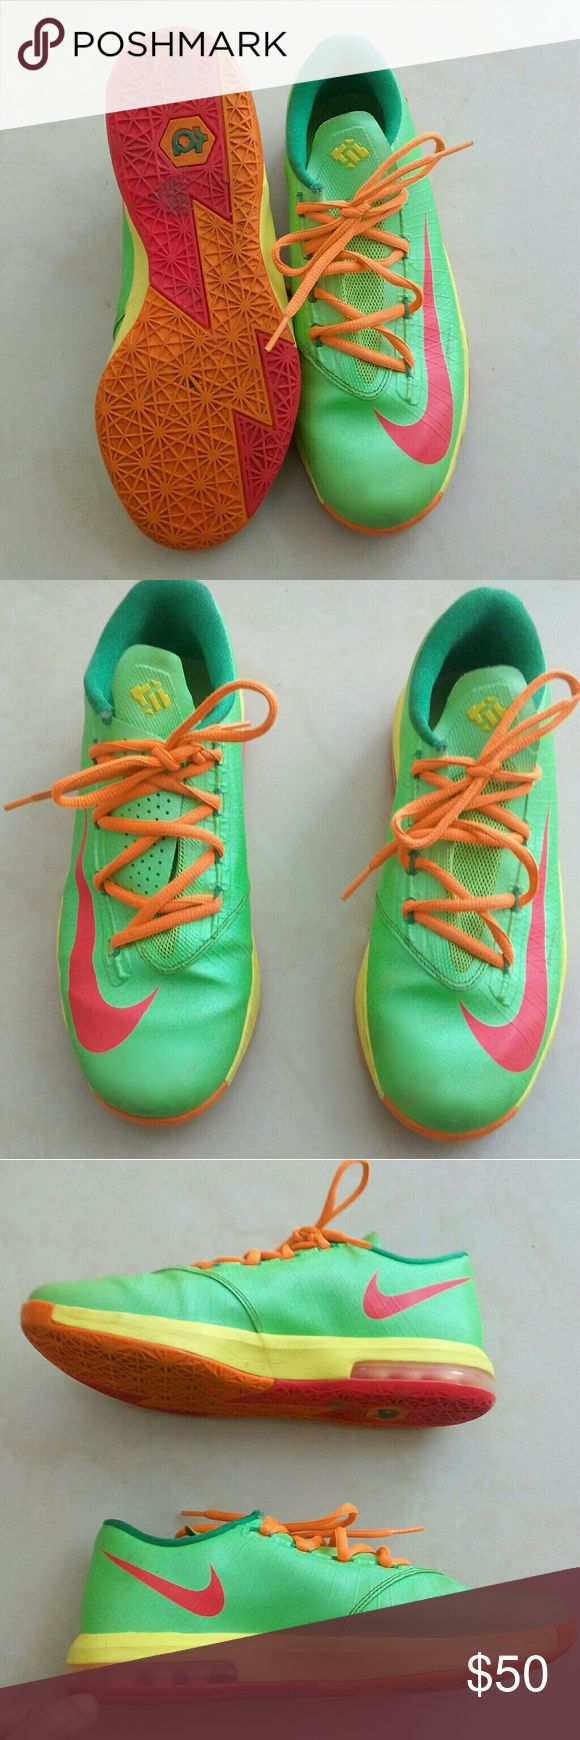 KD Nike Green Neon Sneakers Big Boy Size: 6Y (Big Boy) *USED* Great Conditions! Nike Shoes Sneakers